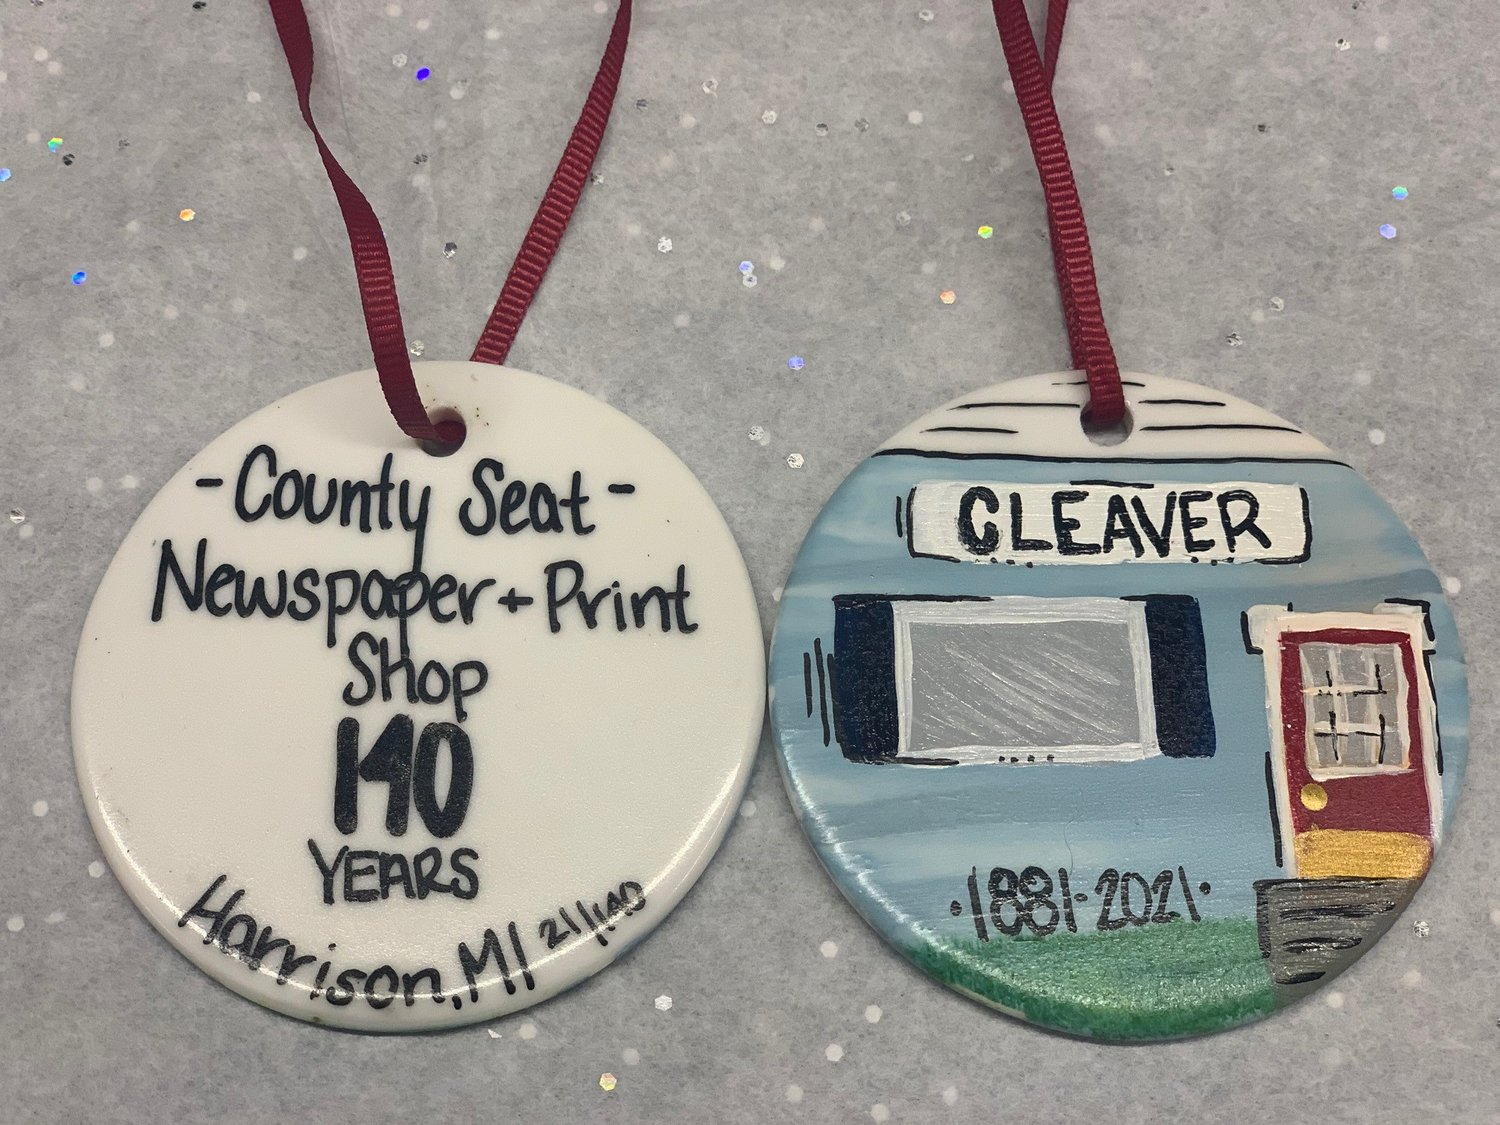 The back and front of the hand painted ornaments created by Emily Martin for the Cleaver.